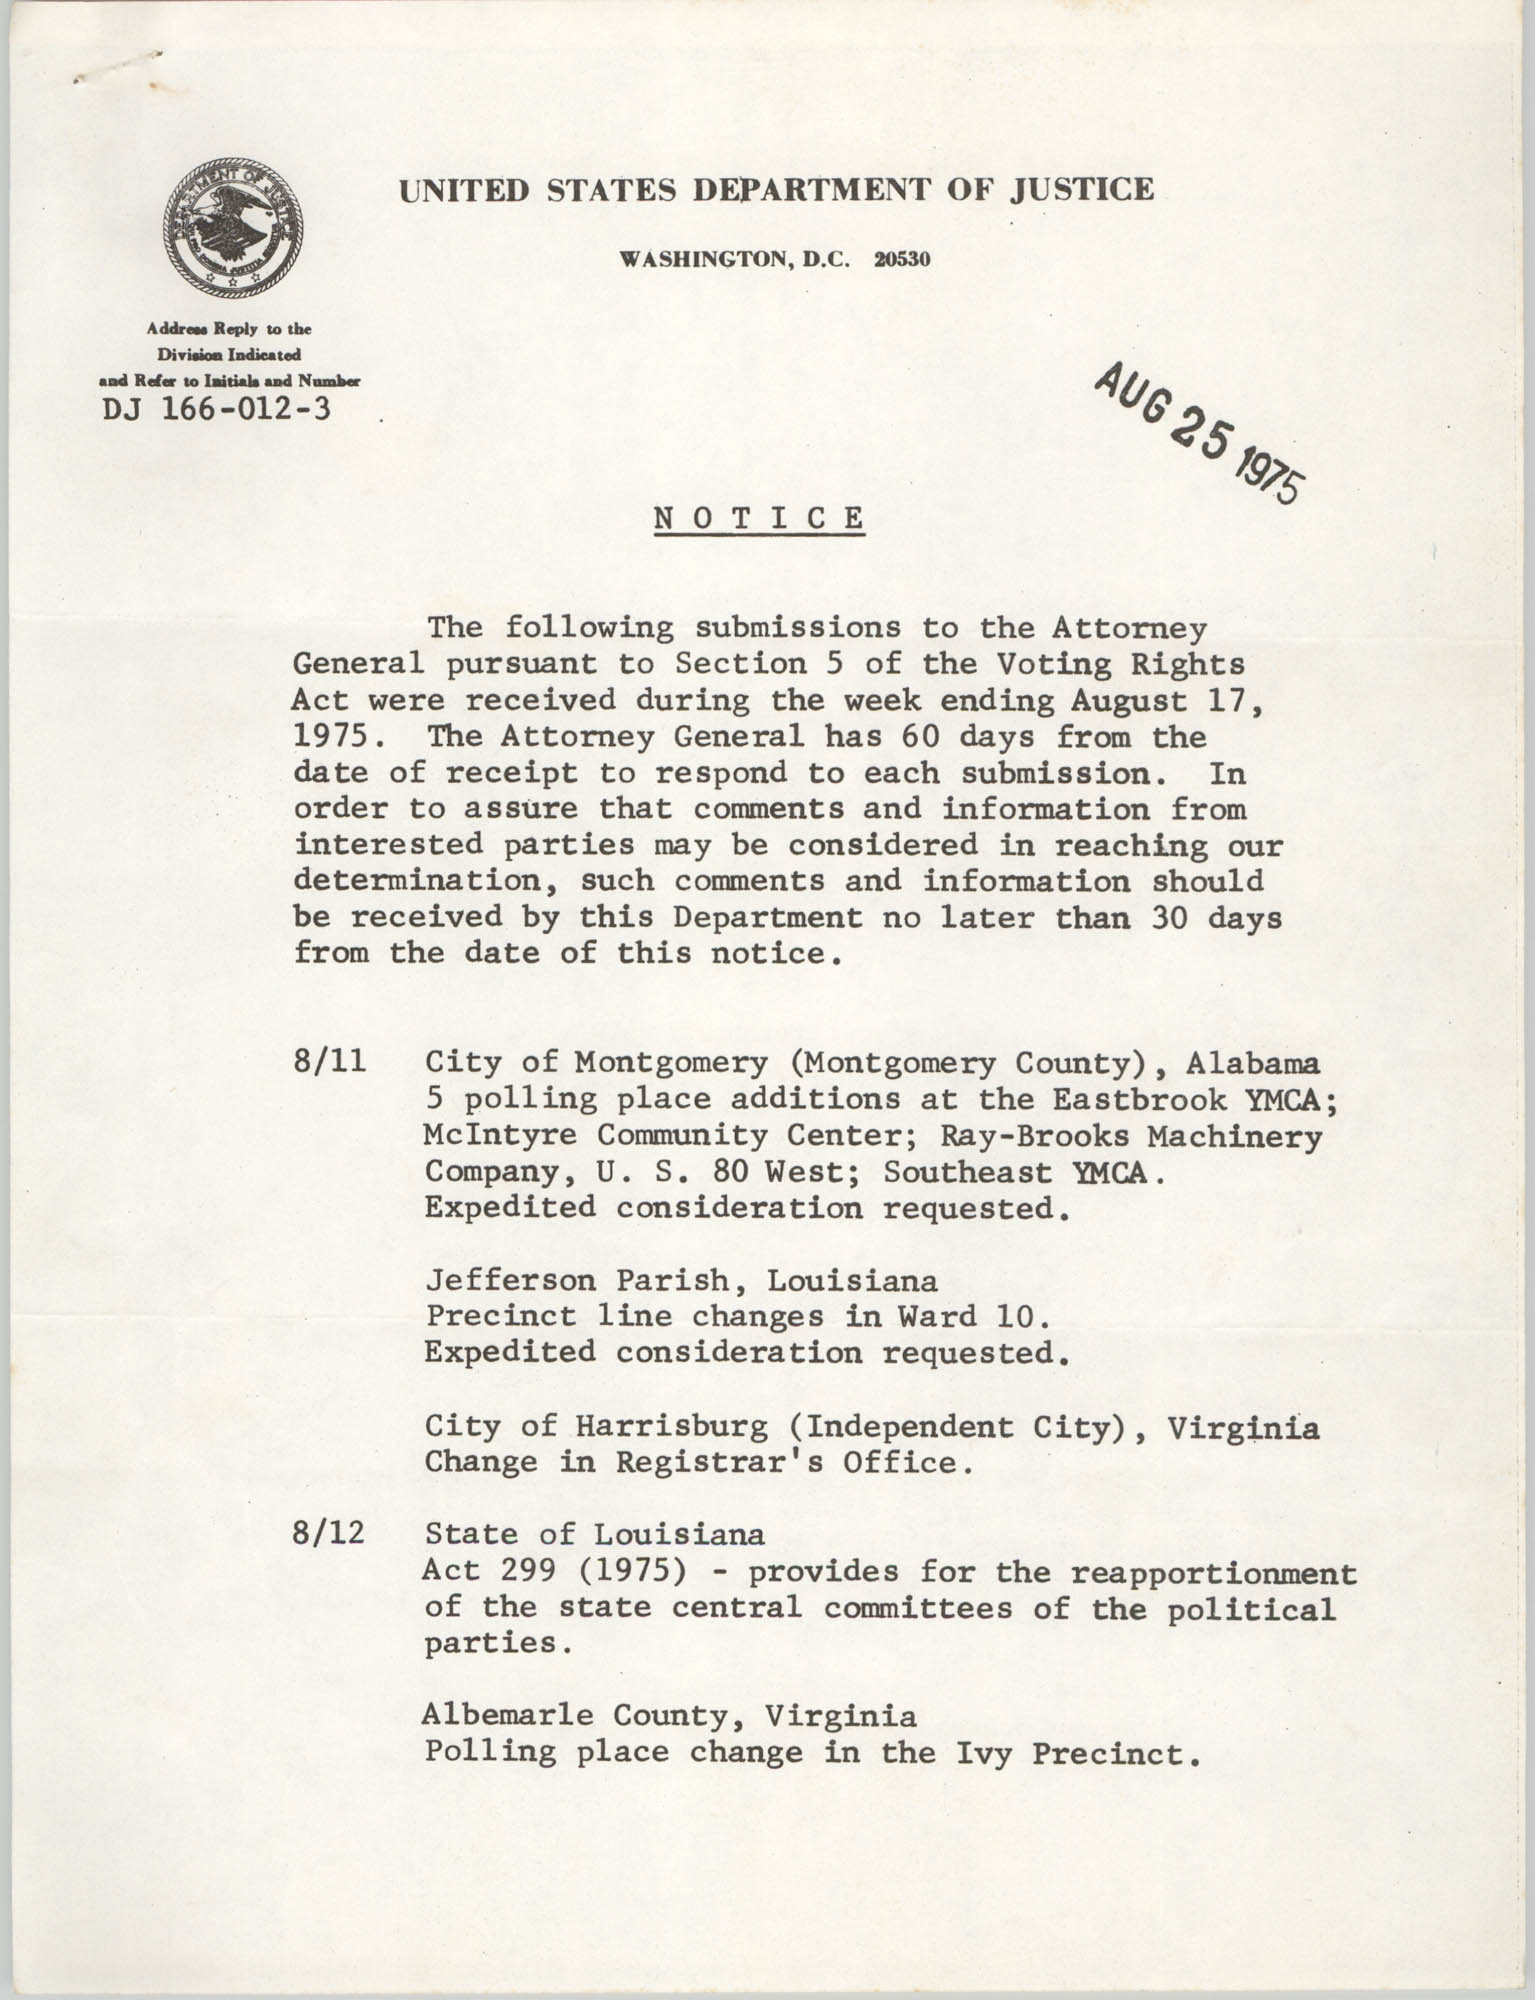 United States Department of Justice Notice, August 25, 1975